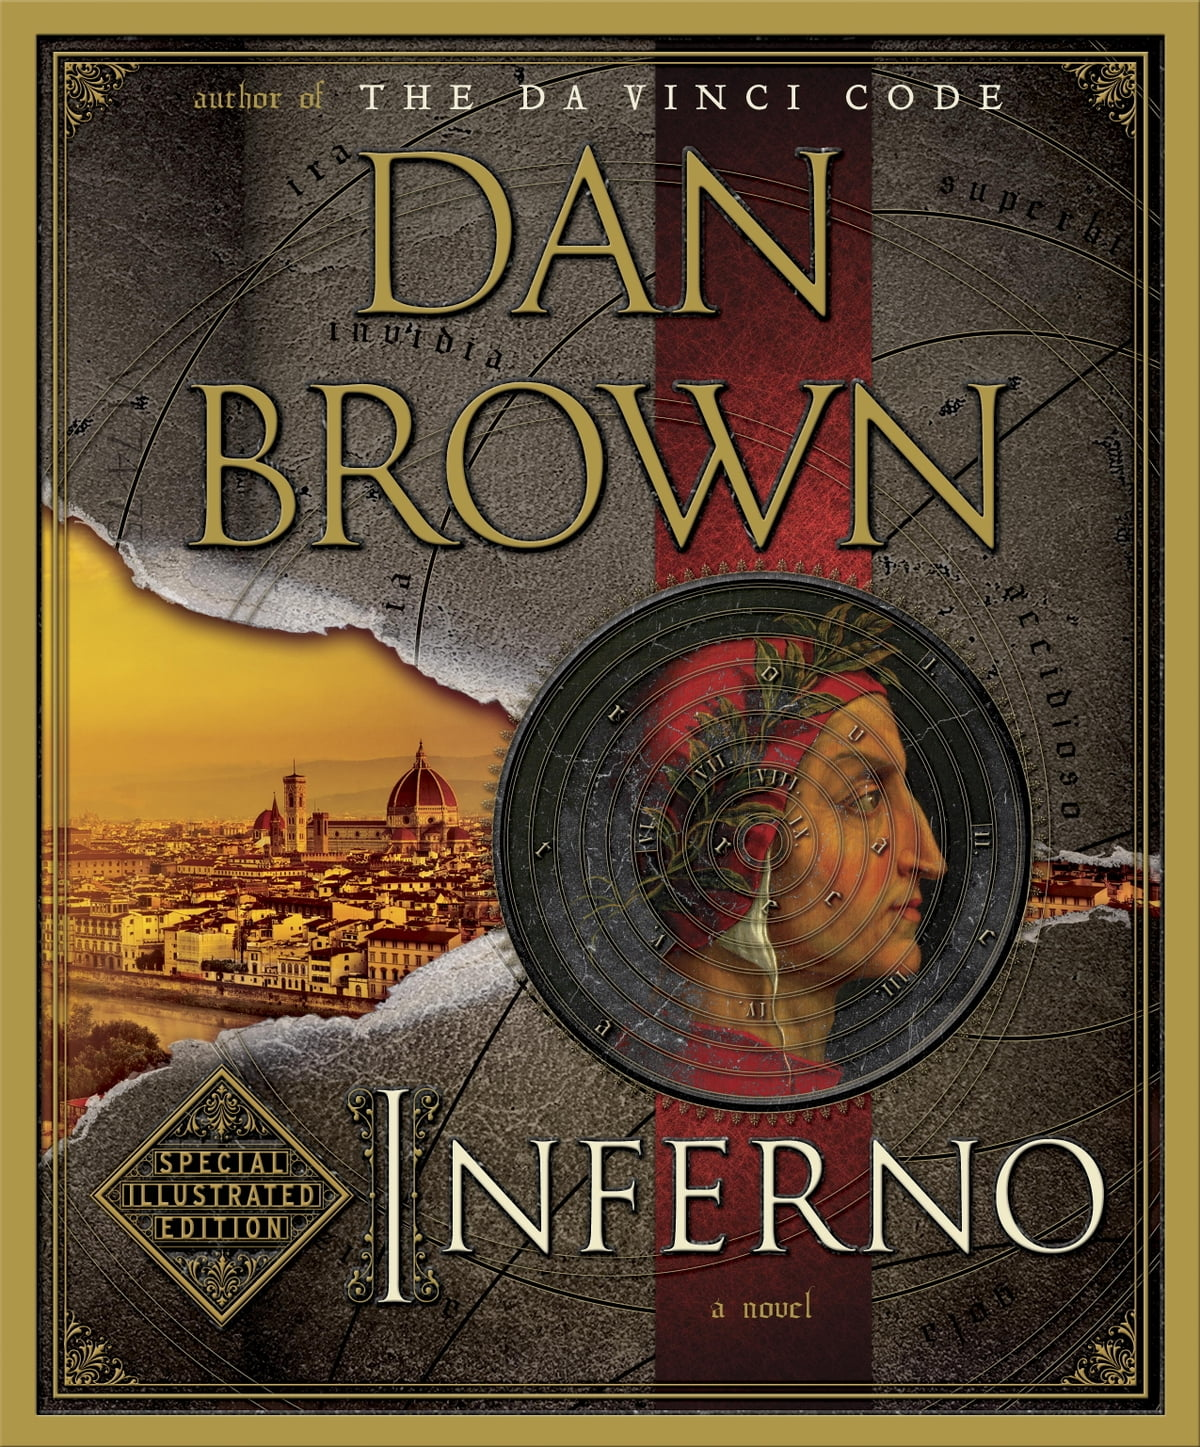 Inferno special illustrated edition ebook by dan brown inferno special illustrated edition ebook by dan brown 9780385539920 rakuten kobo fandeluxe Document